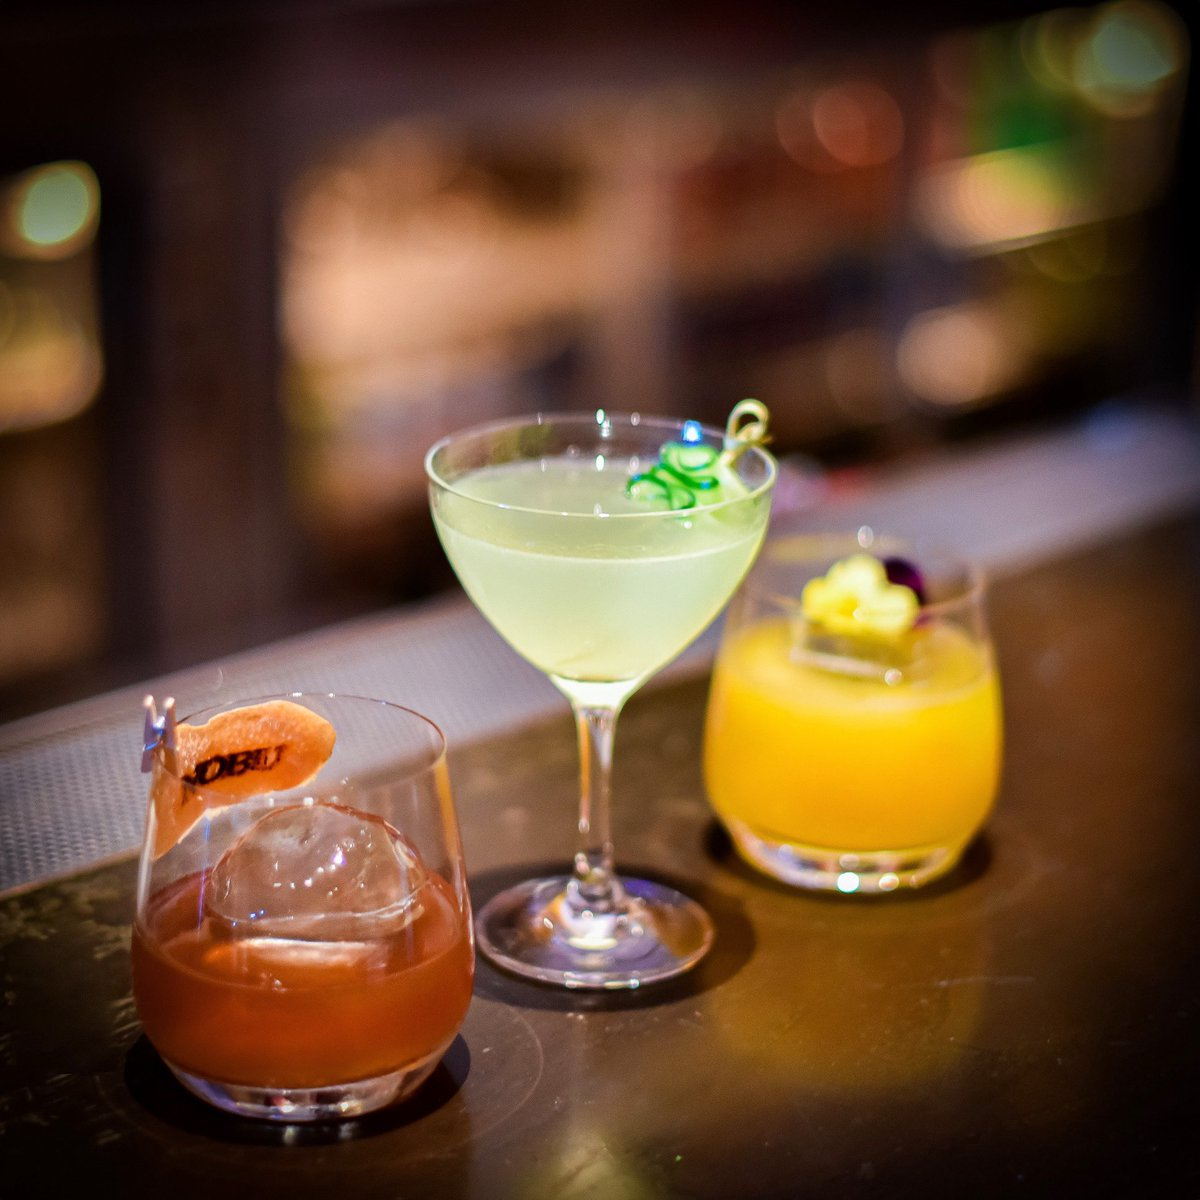 Freshen up your happy hour with a #Nobustyle cocktail. #Nobucocktails #NobuRestaurants